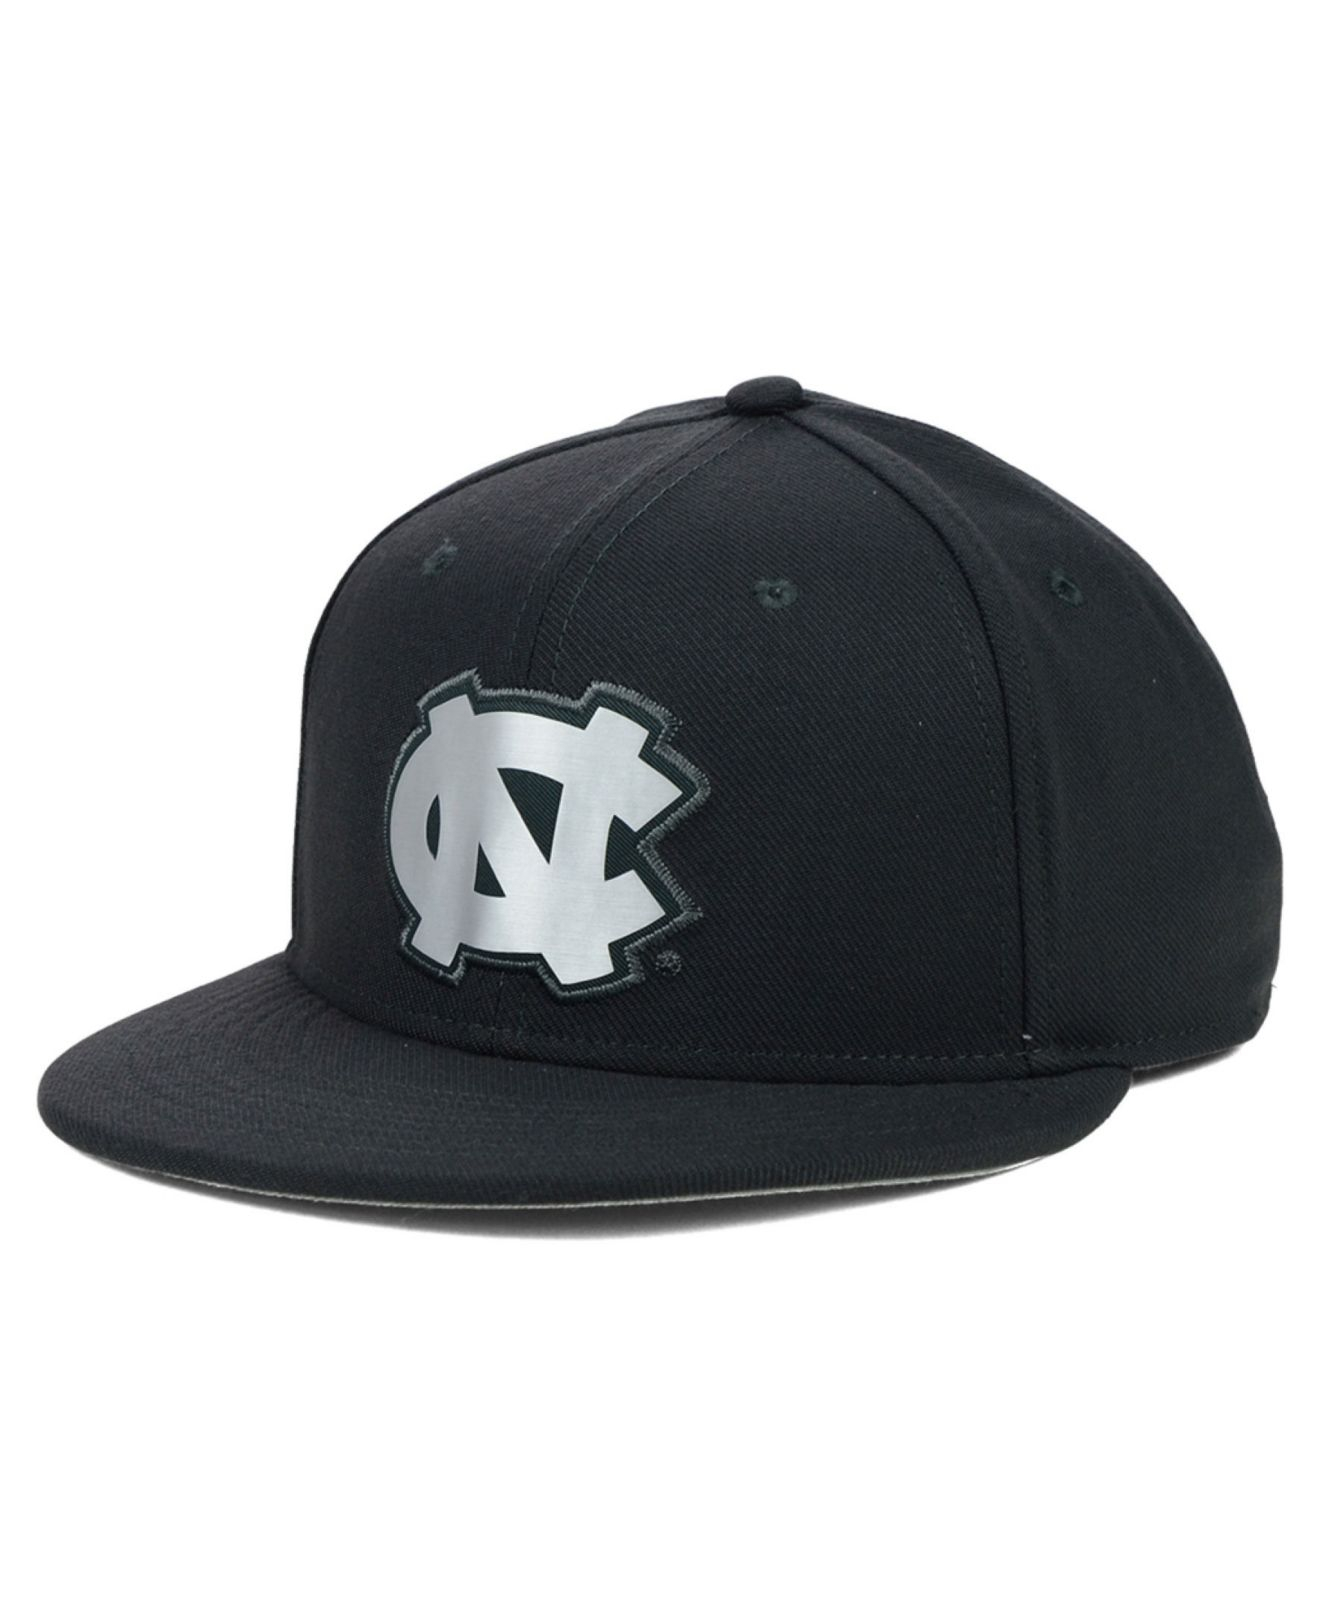 100% authentic d22df 8af52 ... best price lyst nike north carolina tar heels true platinum swooshflex  cap in 1c06a a6702